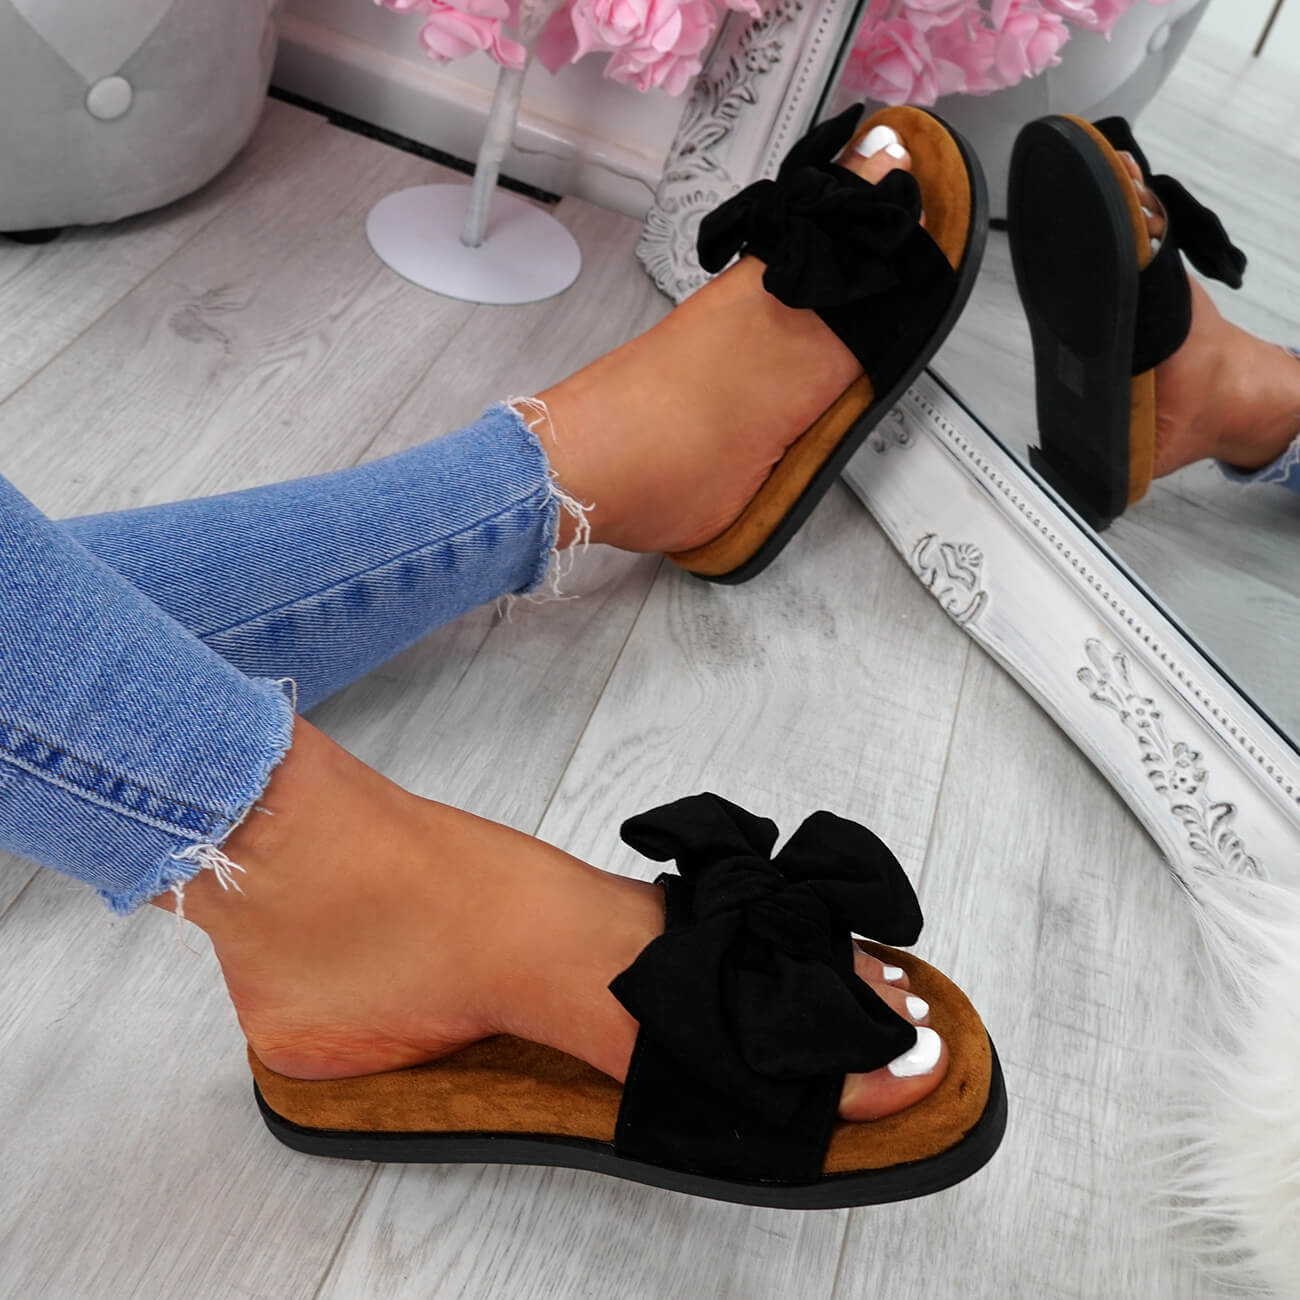 WOMENS-LADIES-FLAT-SANDALS-FRONT-BOW-COMFY-SUMMER-CASUAL-HOLIDAY-SHOES-SIZE-UK thumbnail 13